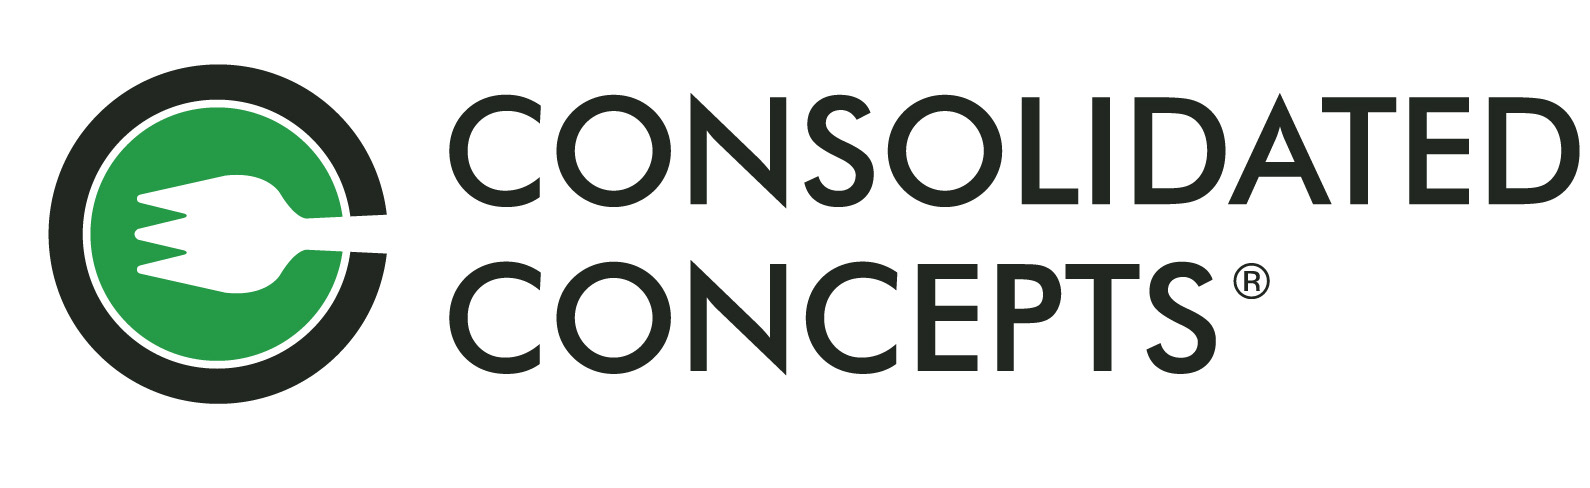 Full Consolidated Concepts logo